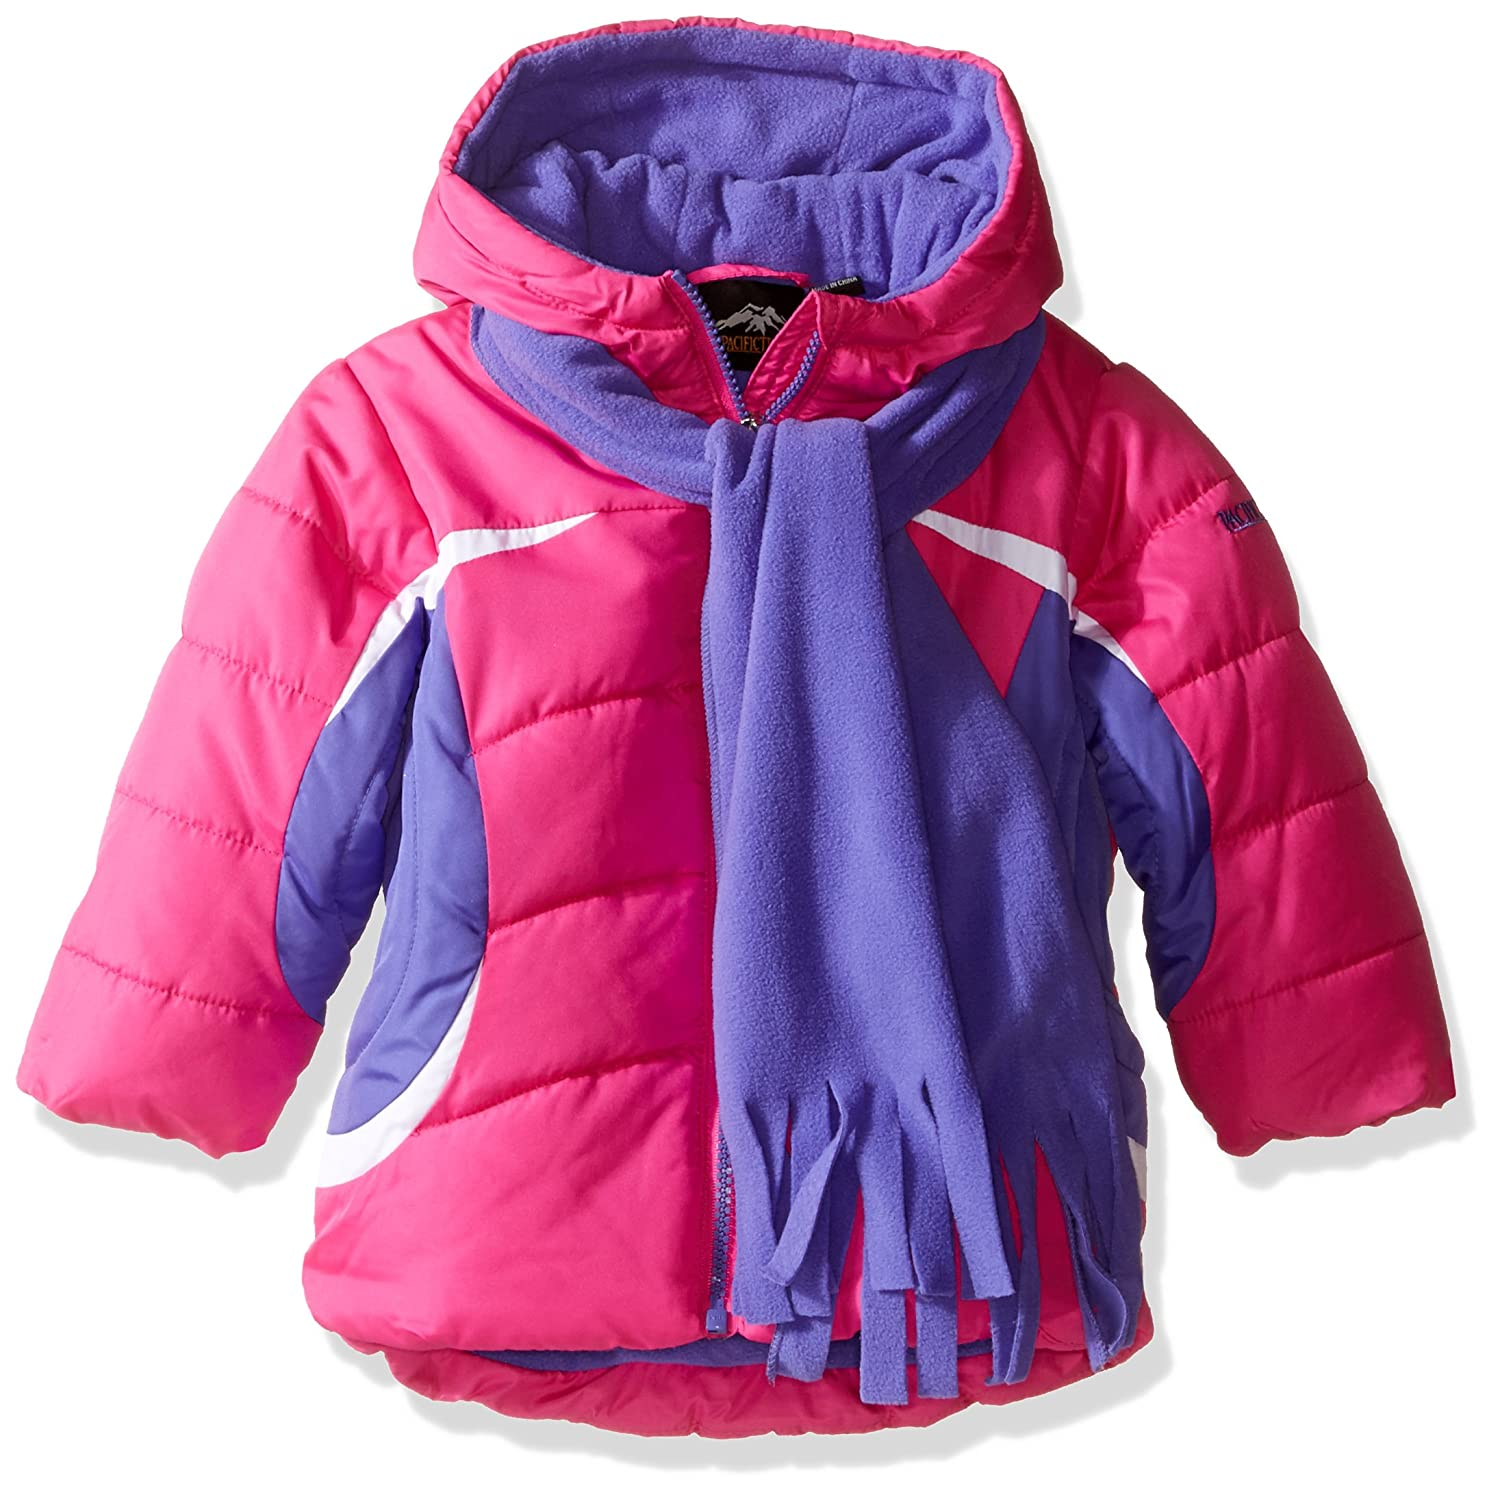 f305d3843 Amazon.com  Pacific Trail Girls  Toddler Color Block Jacket with ...